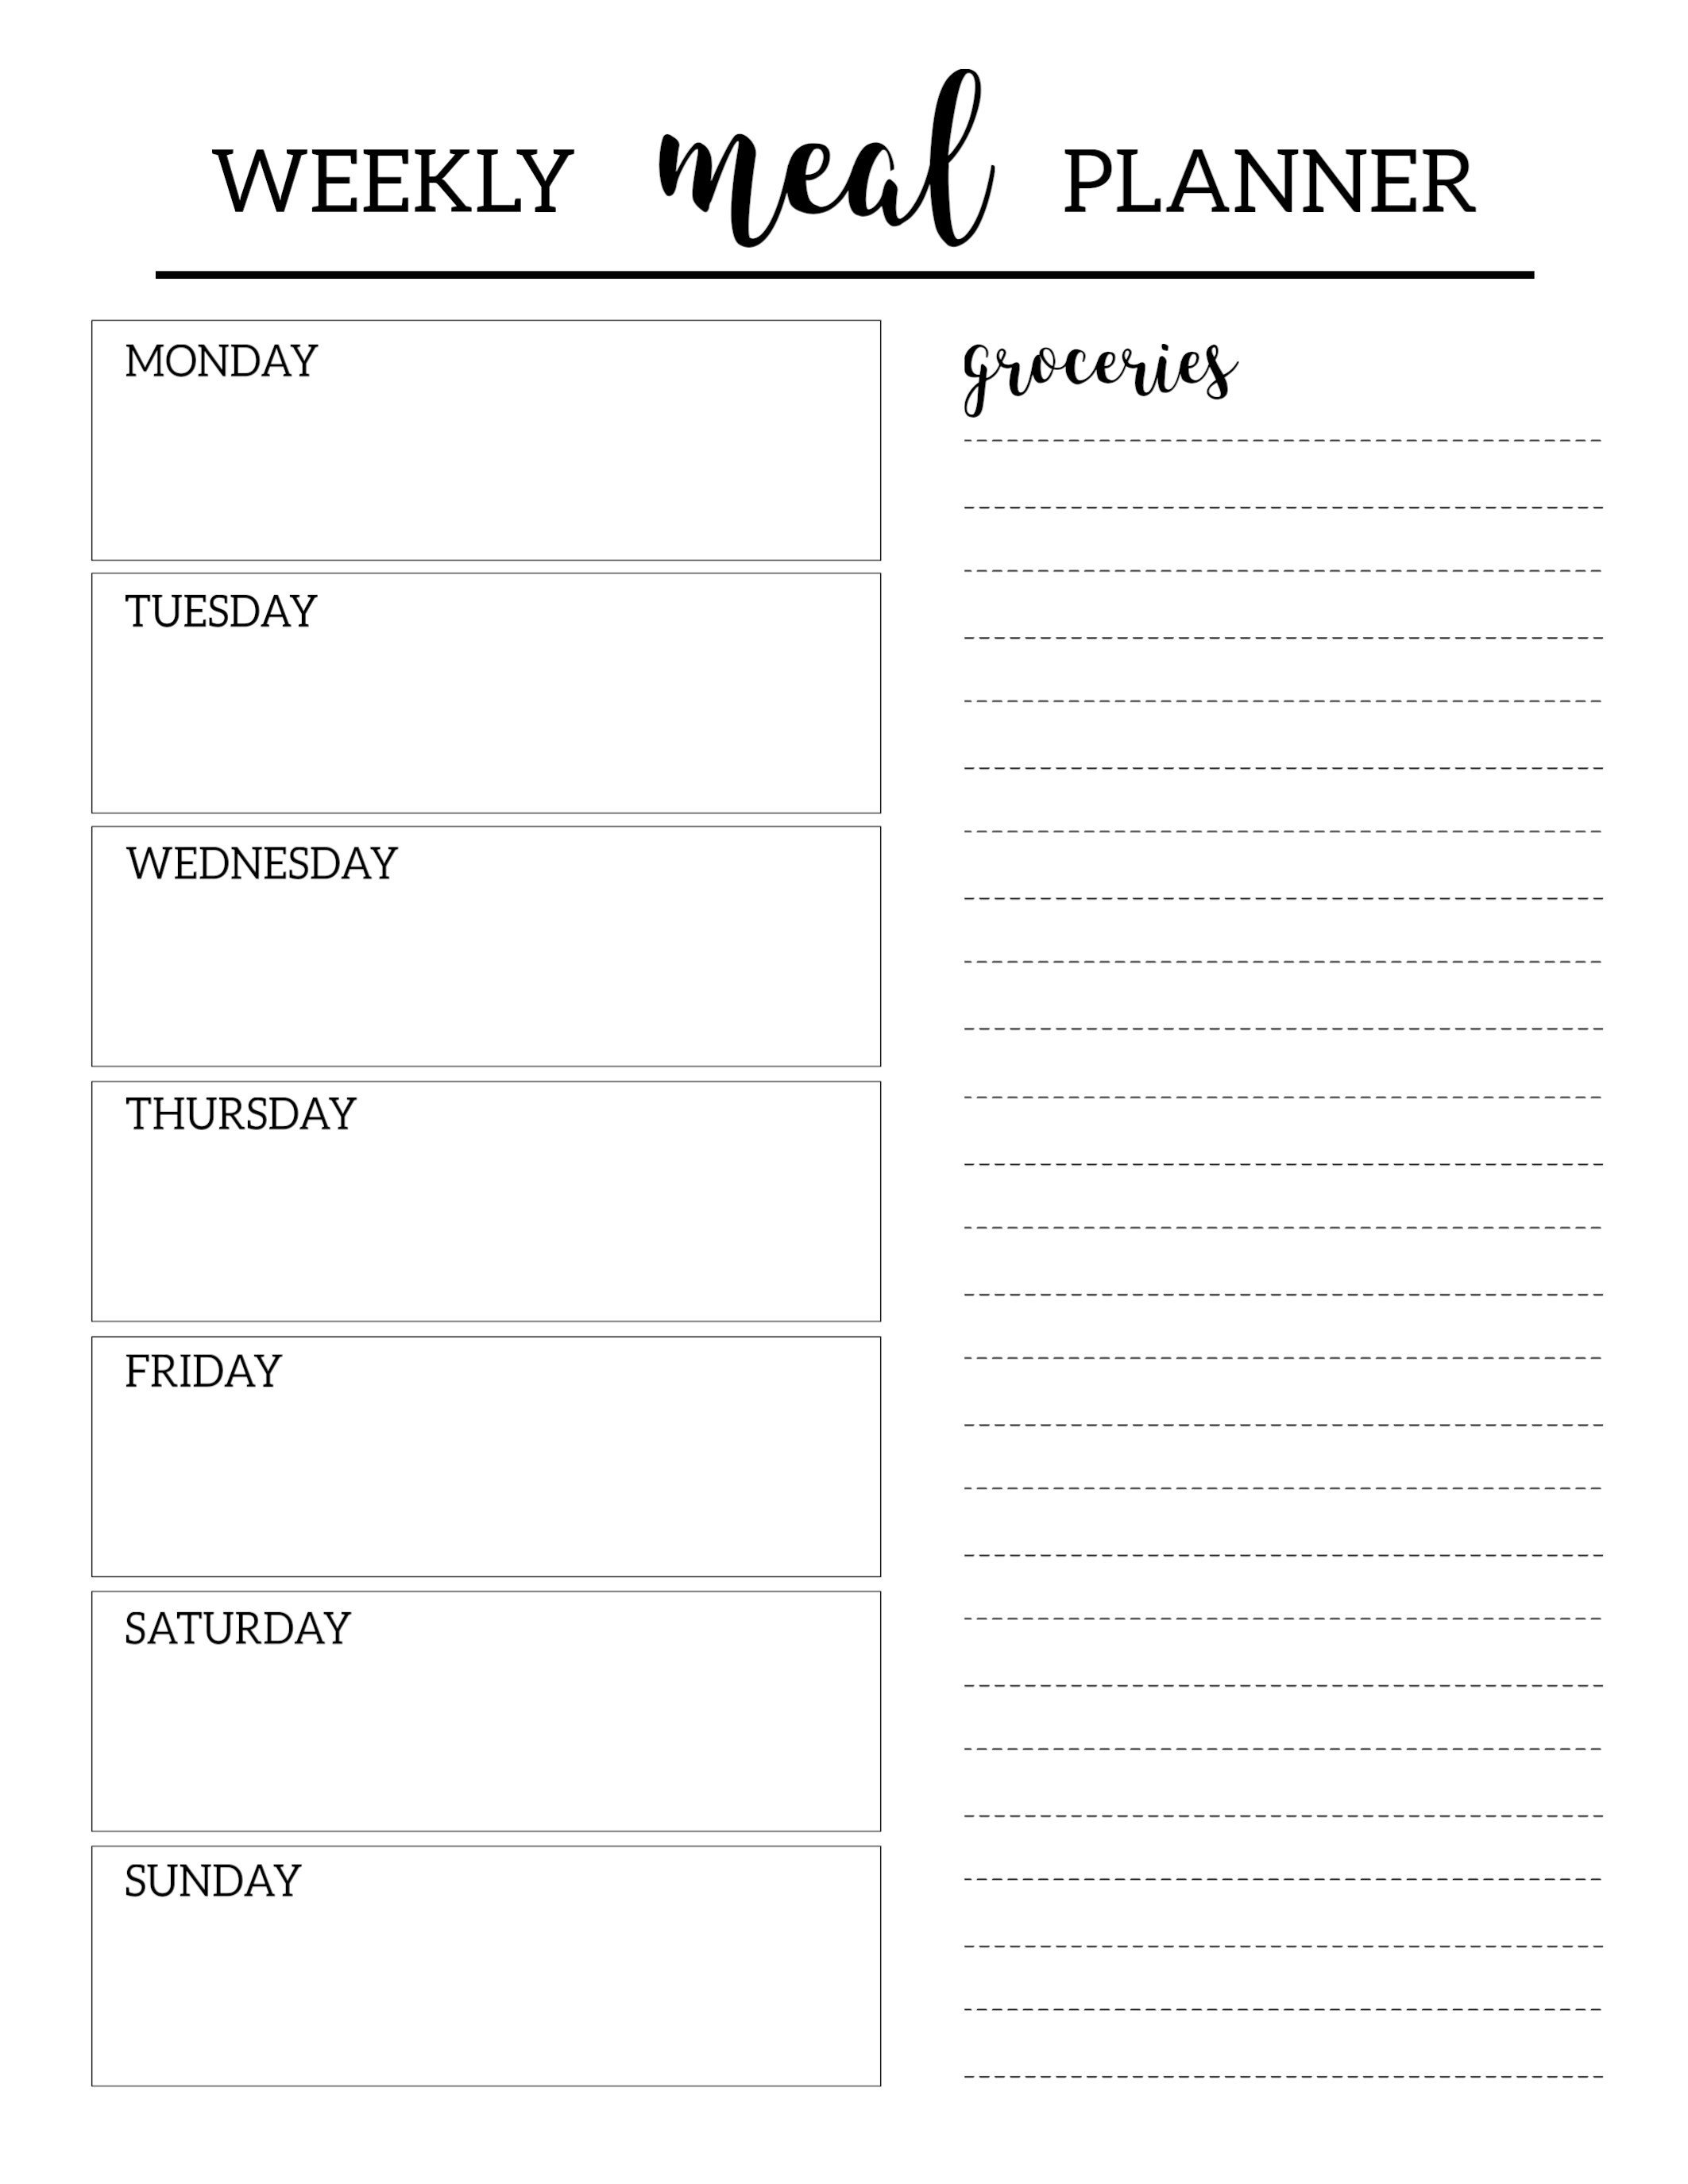 Free Meal Planner Template Free Printable Meal Planner Template Paper Trail Design